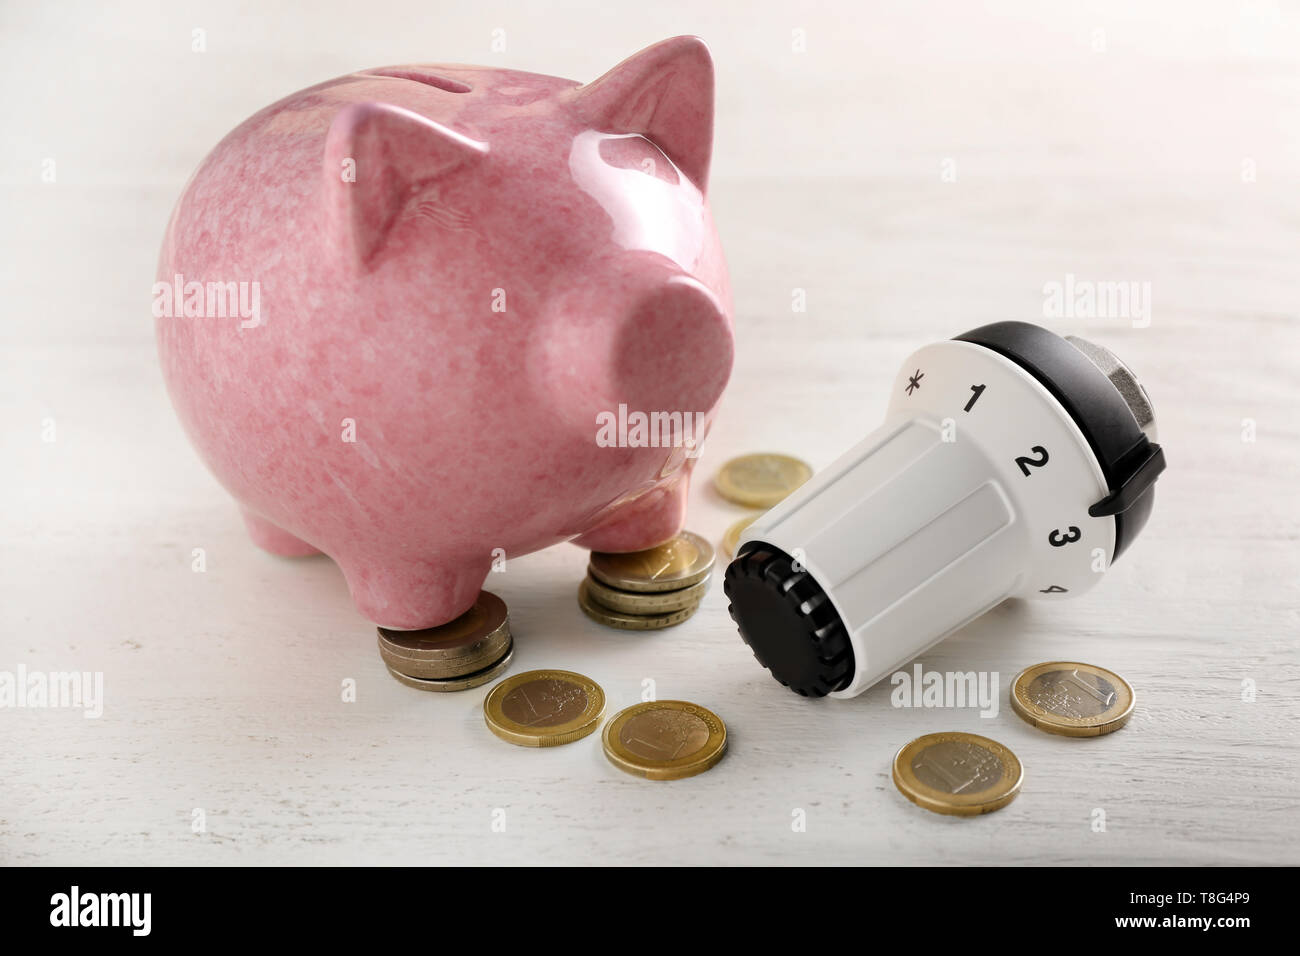 Piggy bank with coins and thermostat on white table. Heating saving concept - Stock Image